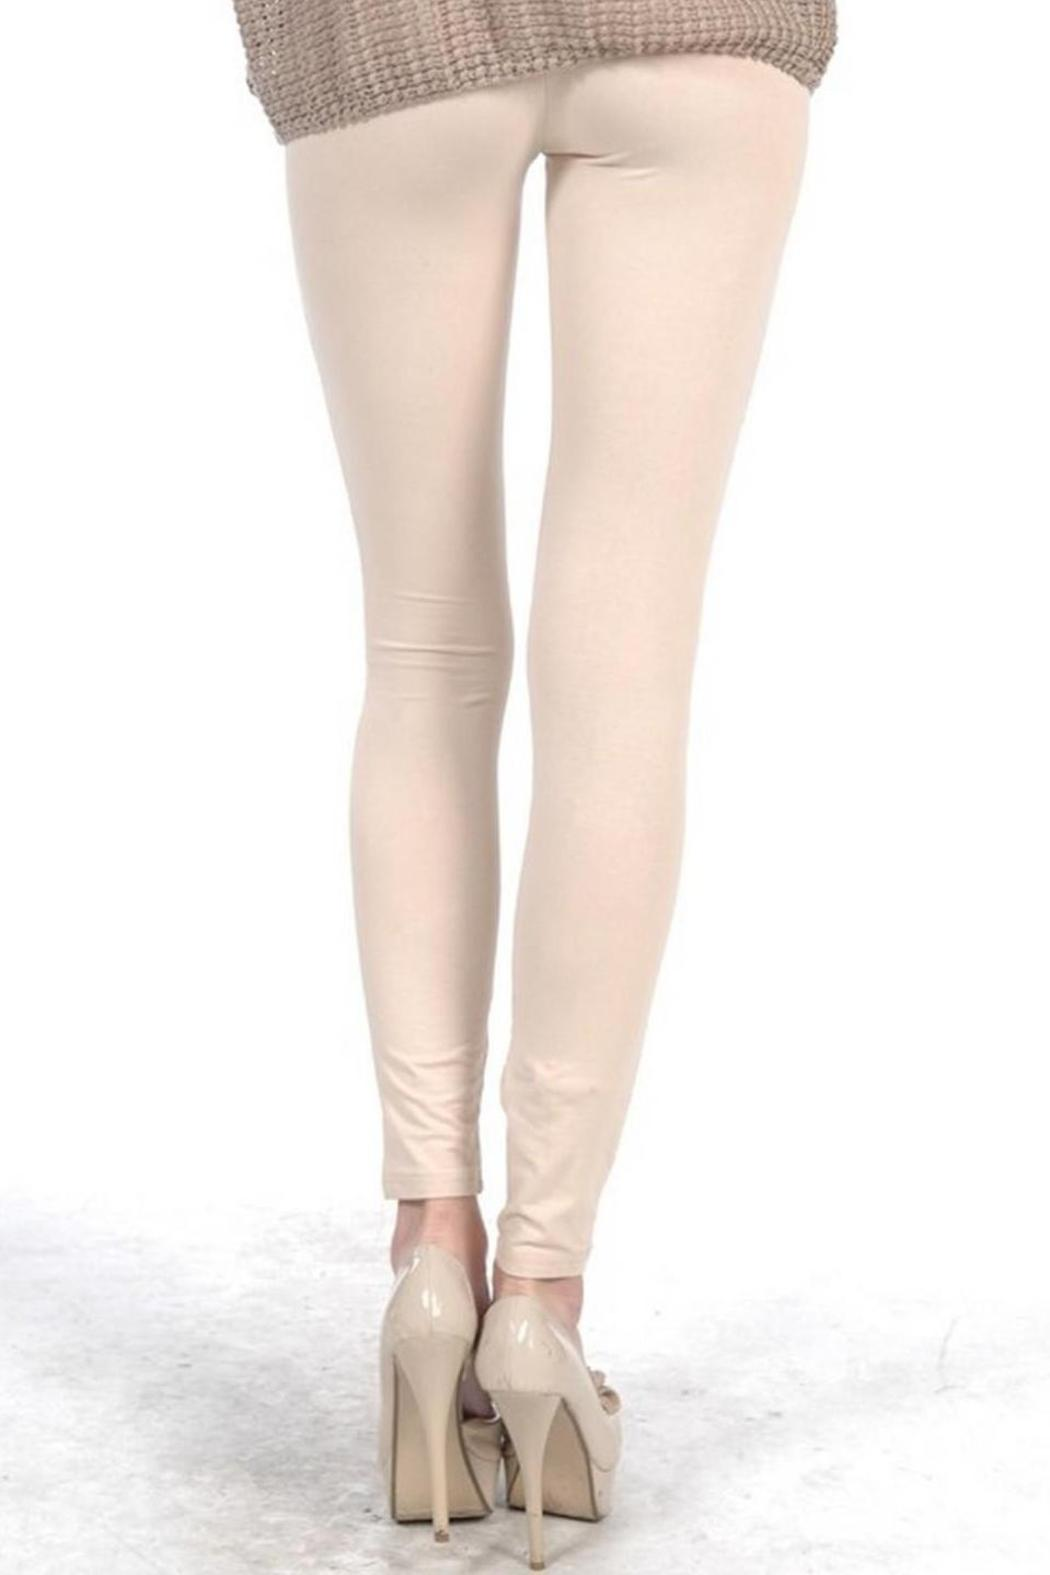 Abby Amp Taylor Cream Lace Leggings From Florida Shoptiques